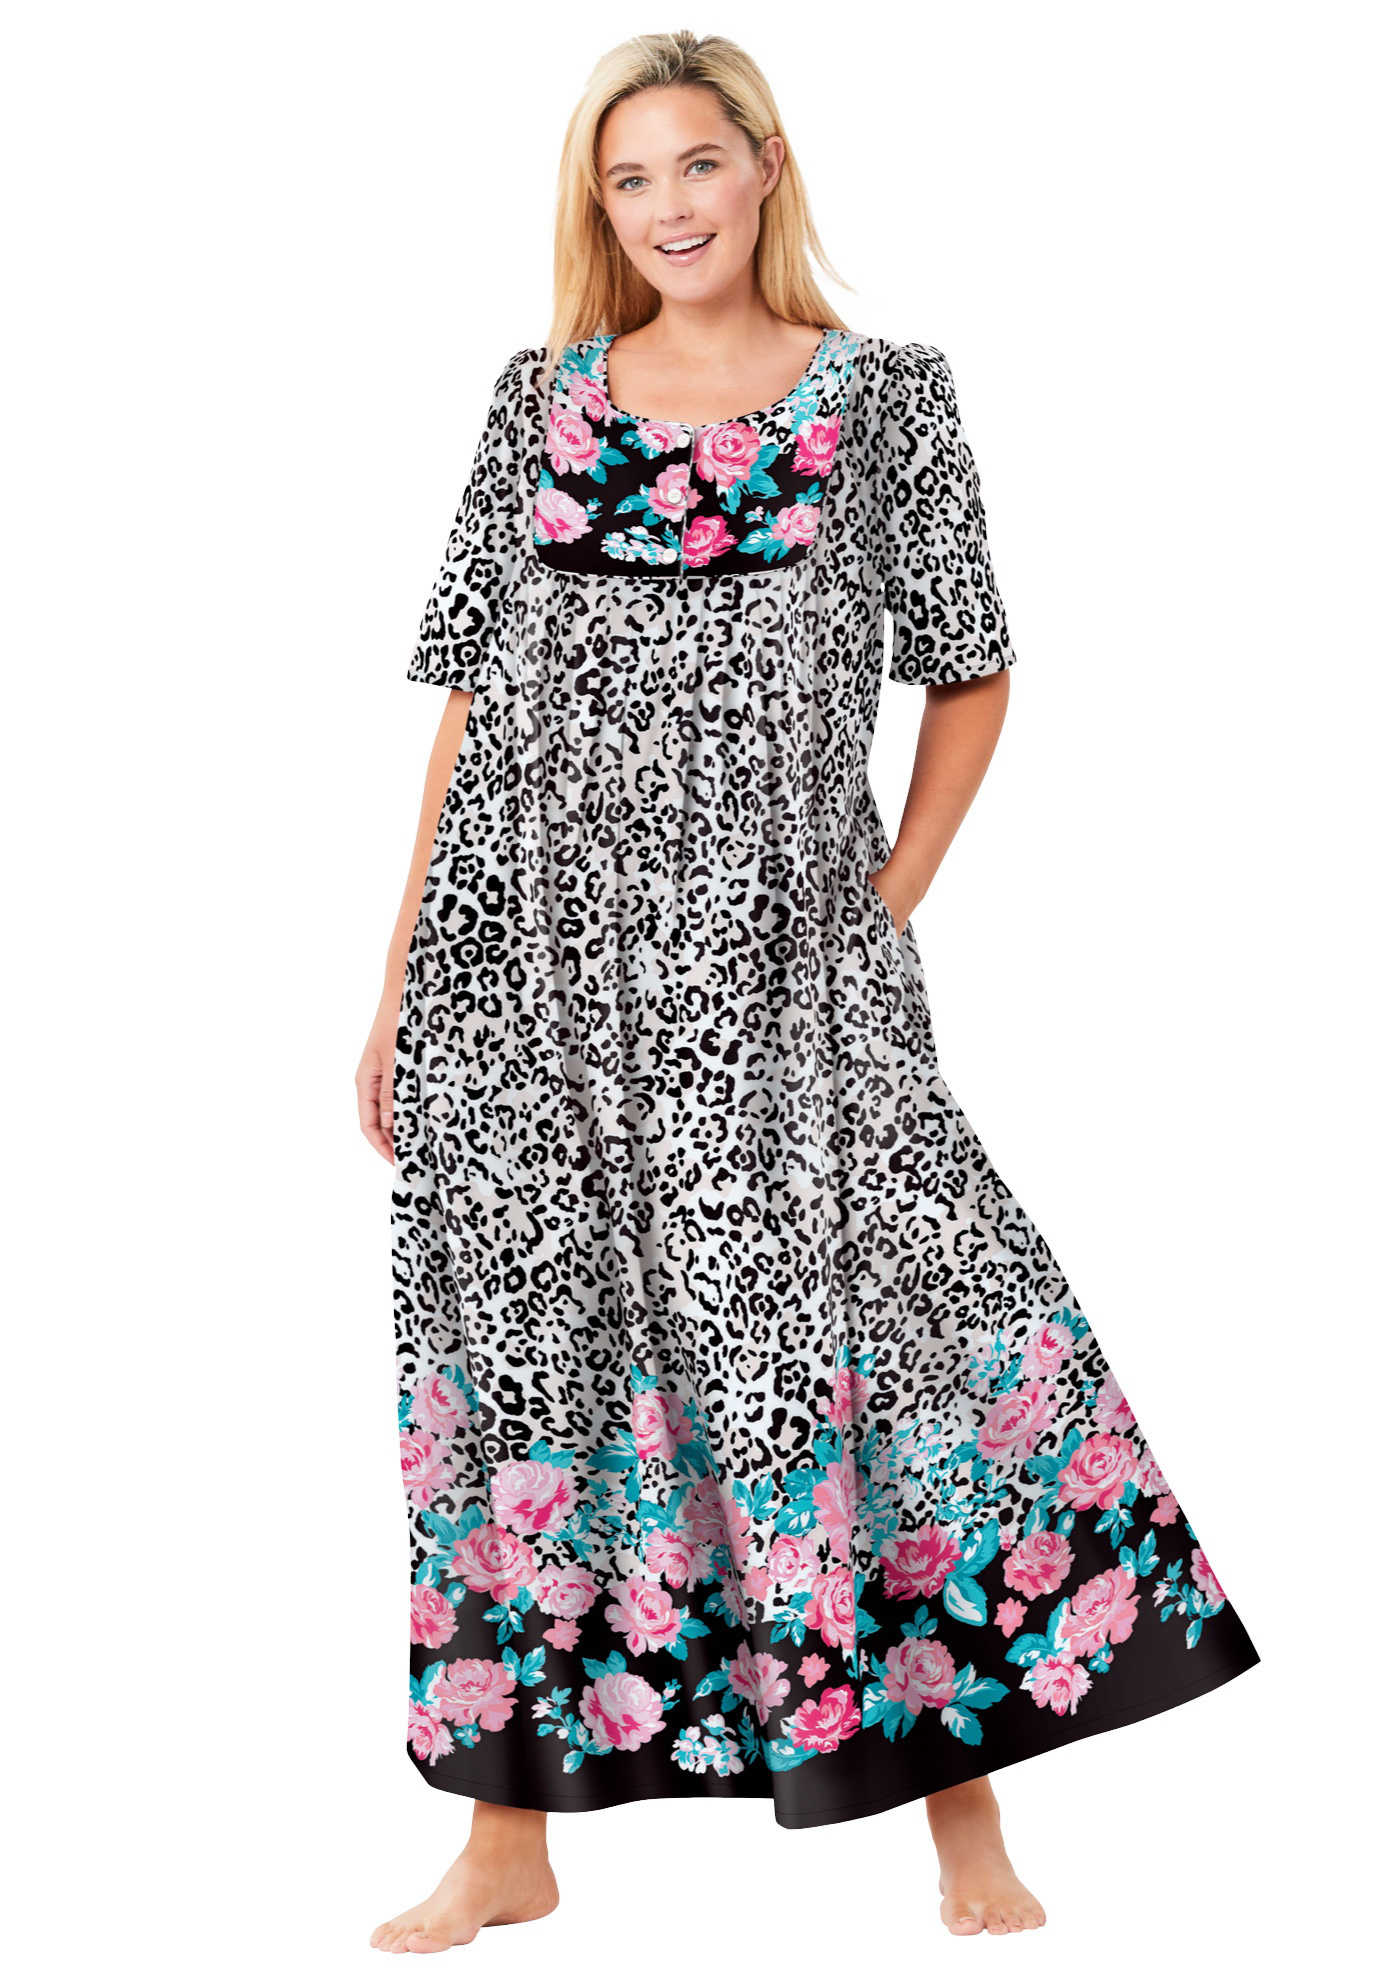 Plus Size Women's Mixed Print Long Lounger by Only Necessities in Natural Leopard (Size L)